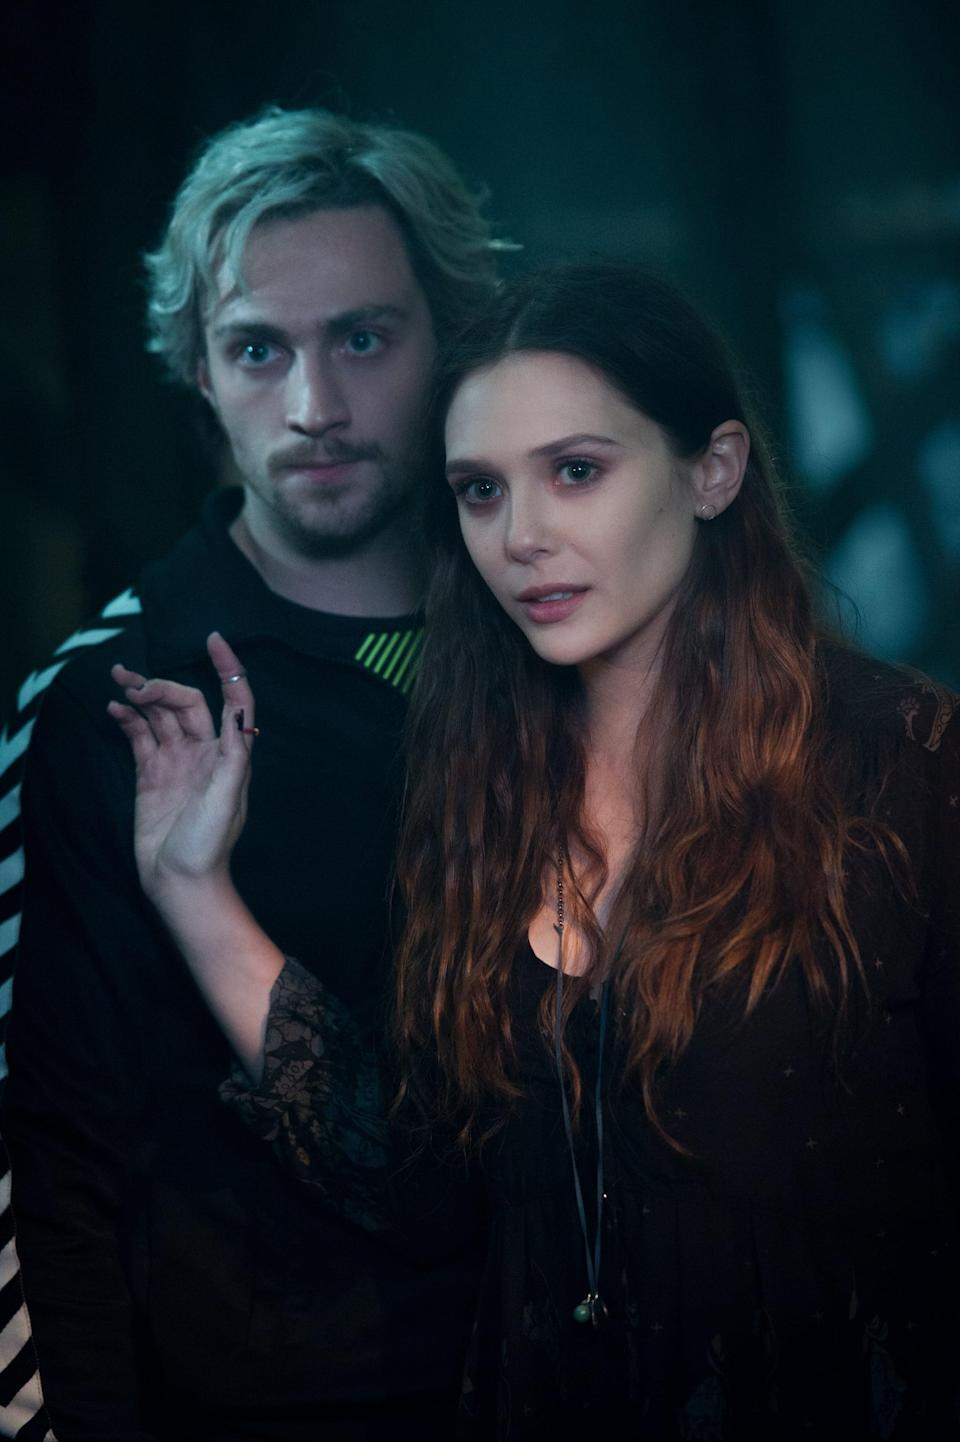 <p><strong>For Scarlet Witch:</strong> A black miniskirt and tank under a red leather jacket, black knee socks, boots, and leather arm warmers.</p> <p><strong>For Quicksilver:</strong> A skintight, blue, long-sleeved shirt and pants (think: a wetsuit). Wear a blond wig, and add a little mustache.</p>